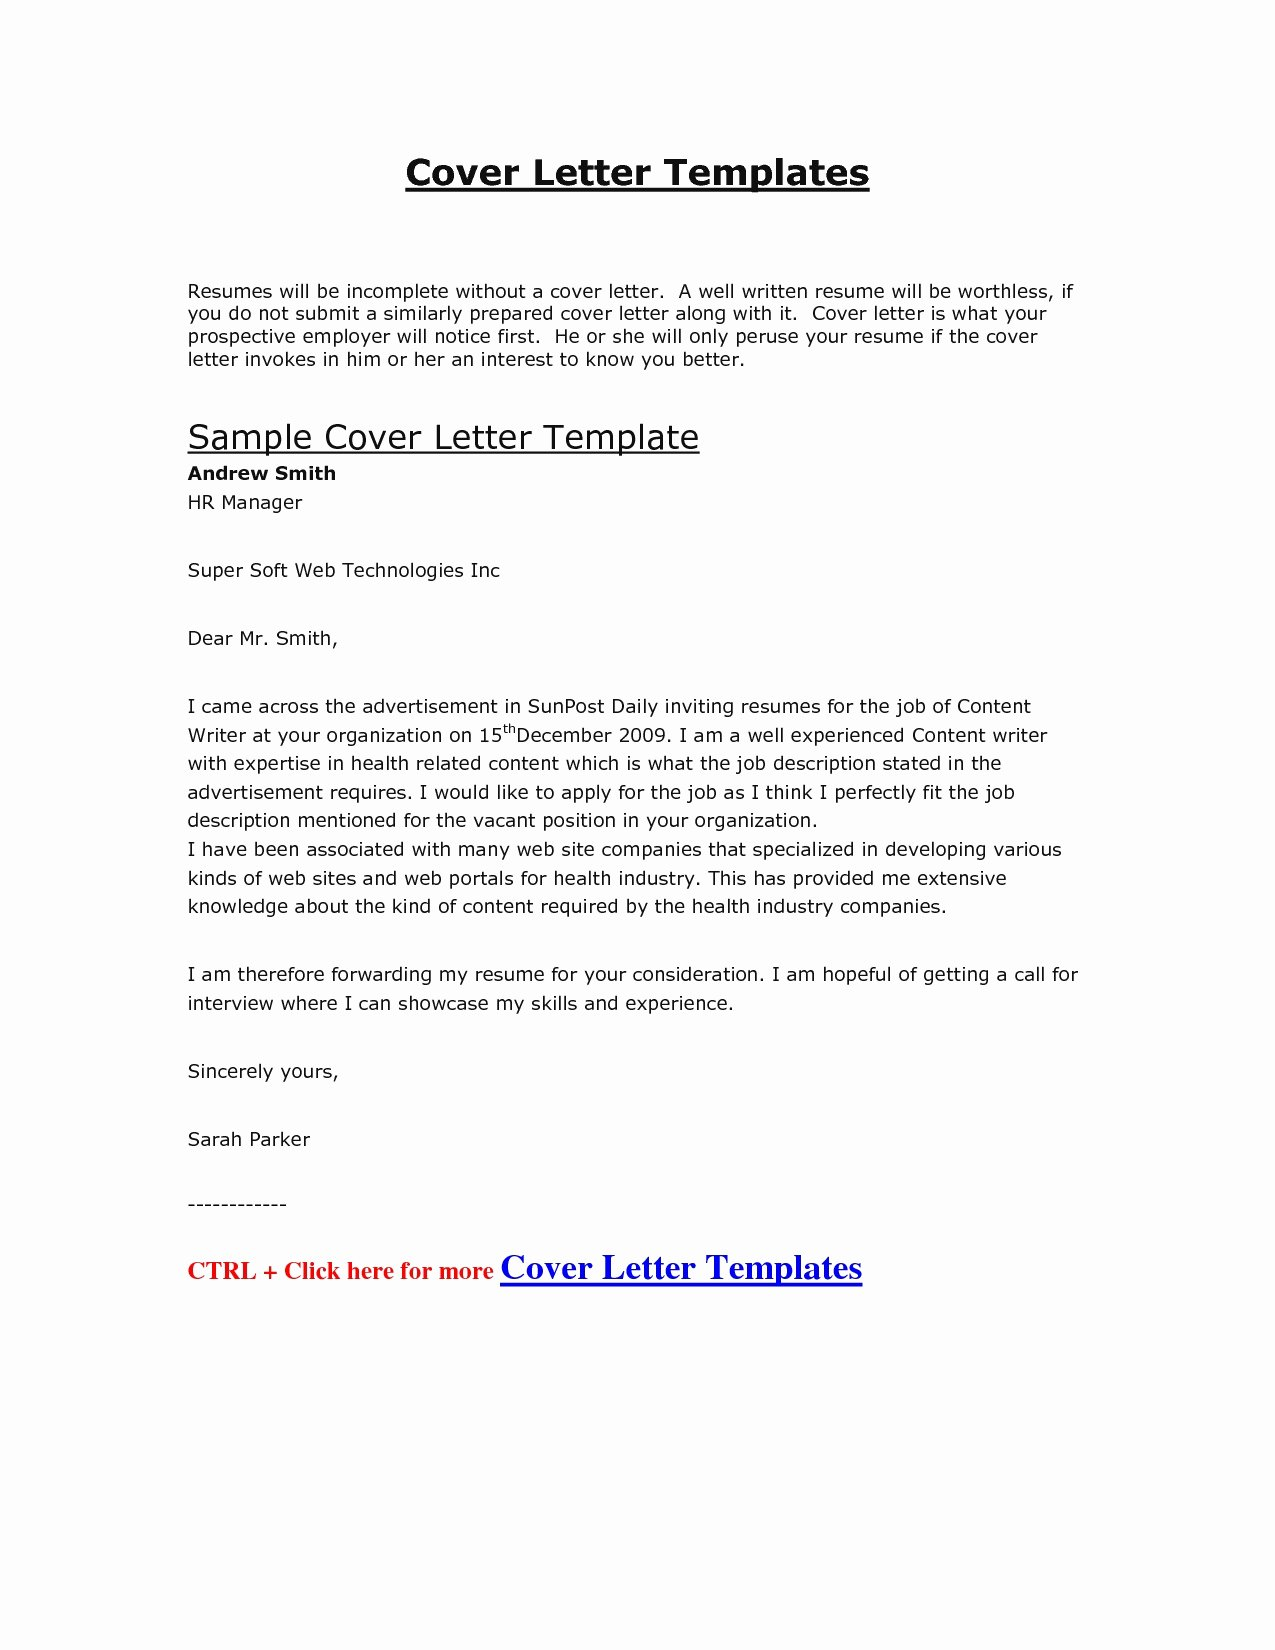 Cover Letters for Line Applications Sarahepps